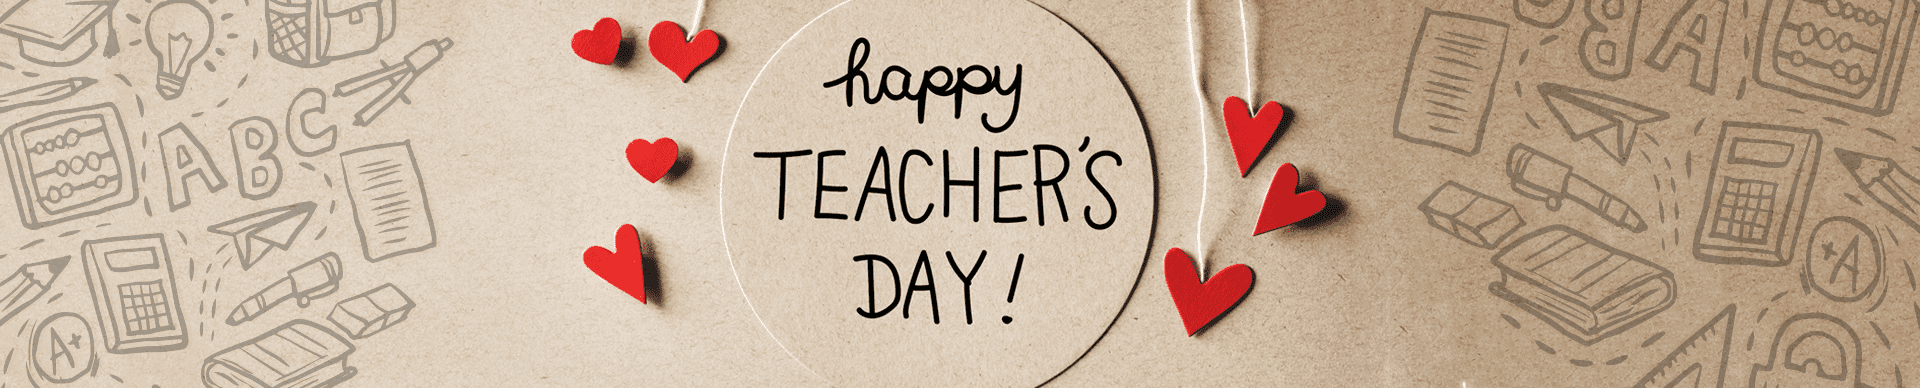 Personalized Gifts for Teacher's Day